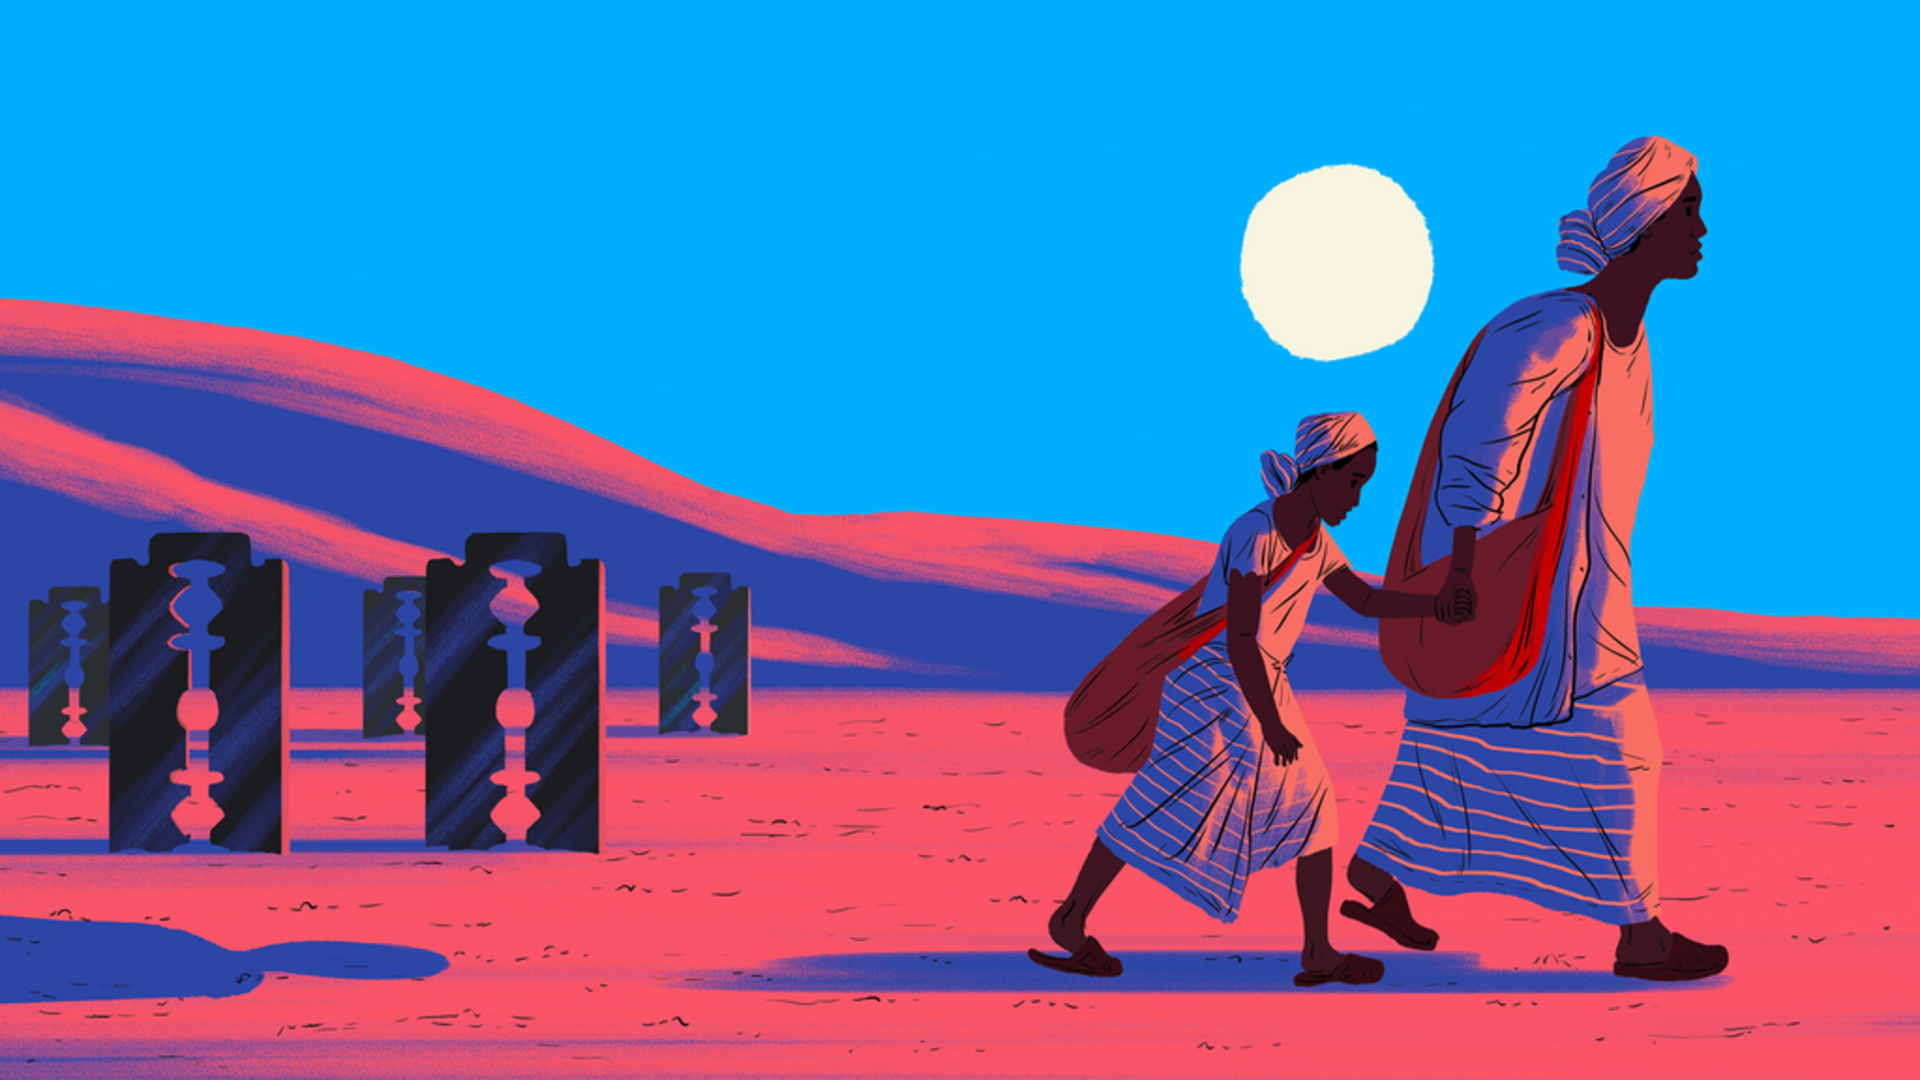 An illustration of Alia, a woman who escaped Sudan and is attempting to make it to Italy. Alia is walking in the desert while holding hands with her 11-year-old daughter. It is evening and there is a bright blue sky and white moon behind them.